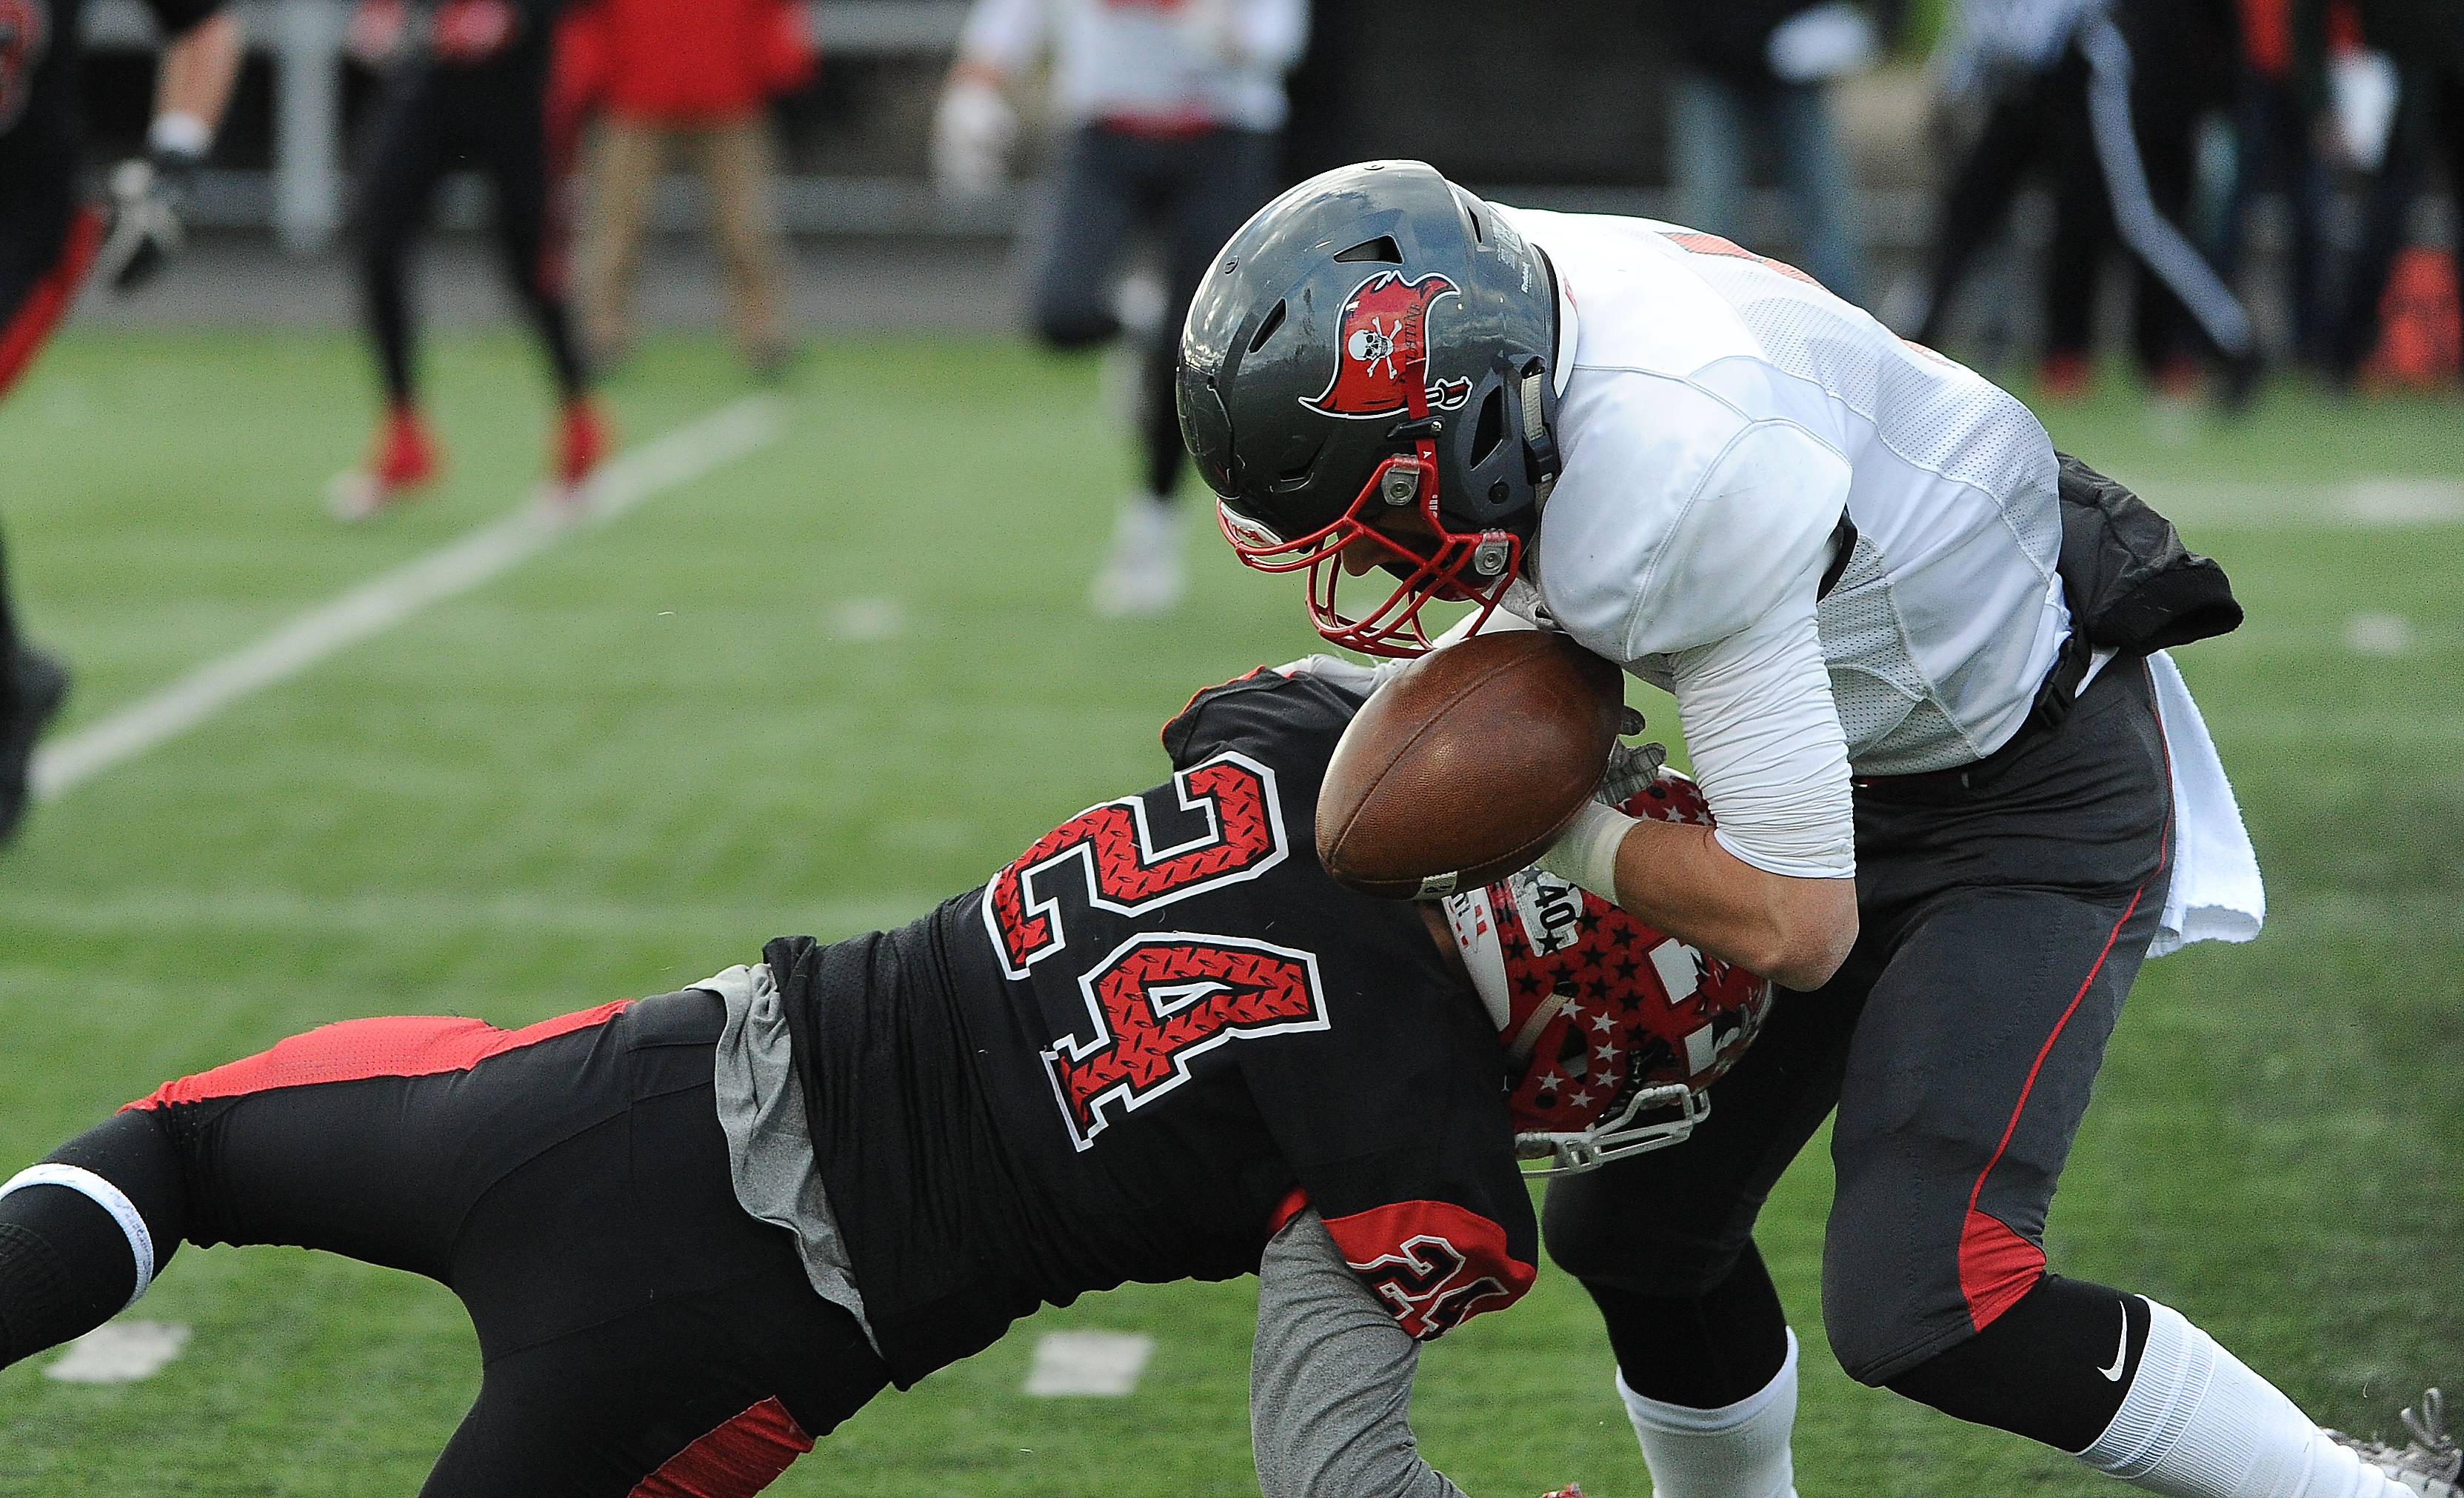 Palatine's Jack Orlando gets popped by Maine South's Matthew Schneider for a fumble during Saturday's Class 8A semifinals.